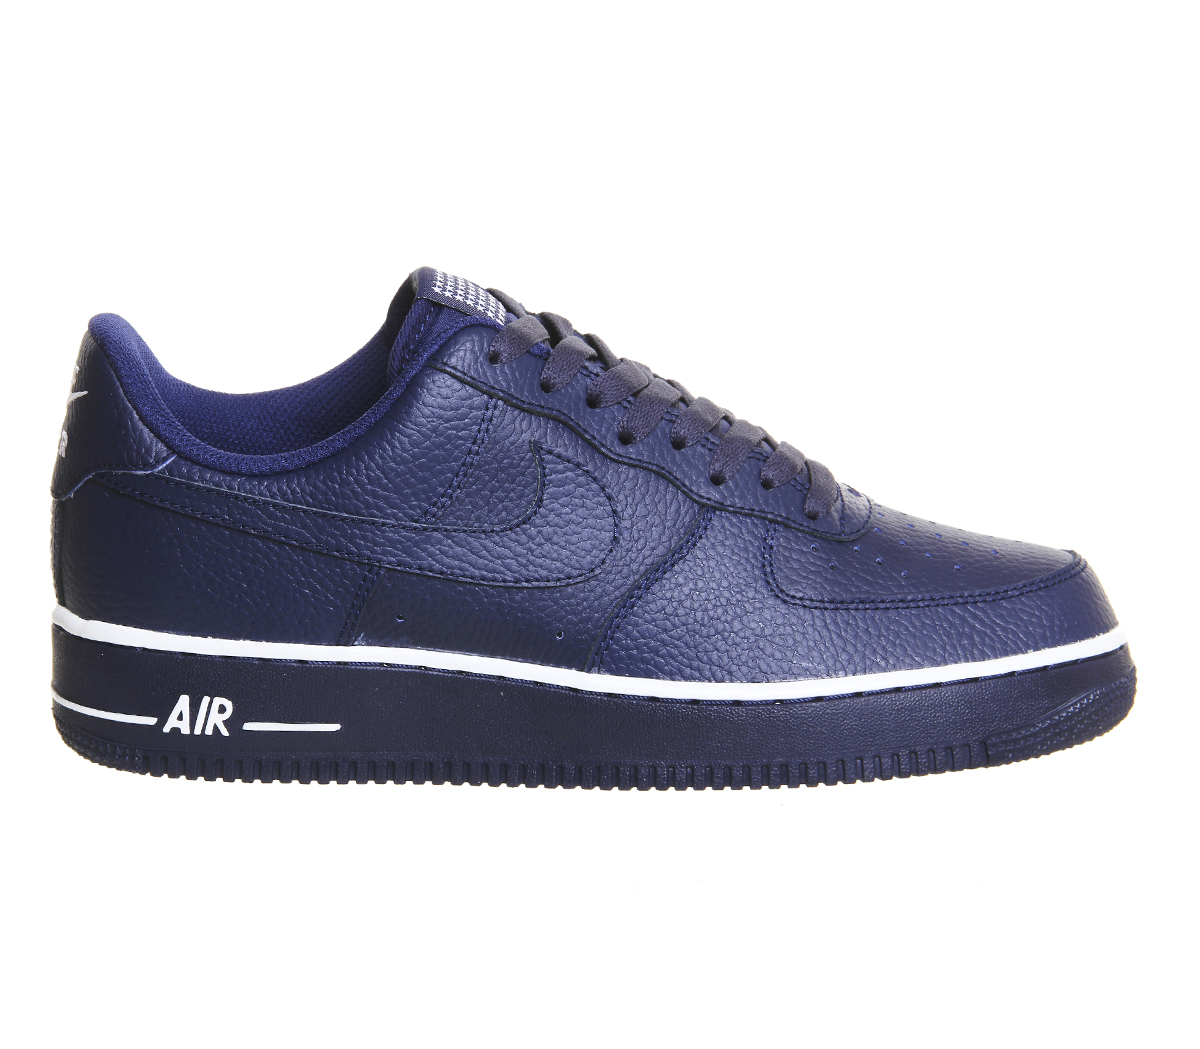 air force one nike blau estrelinha. Black Bedroom Furniture Sets. Home Design Ideas